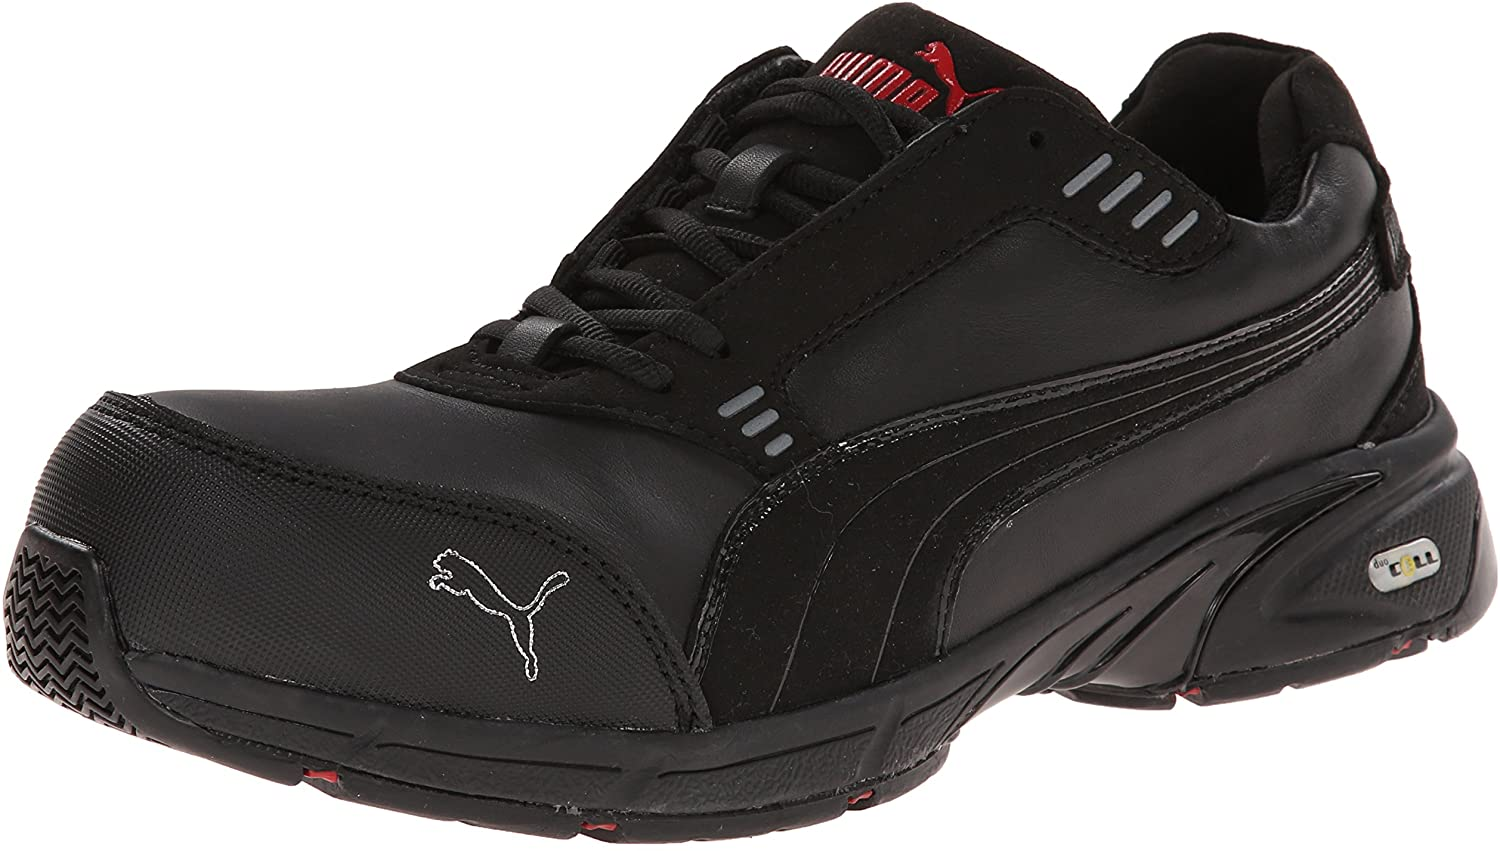 Puma Safety Black Mens Leather Velocity Low SD WRU CT Oxfords Work Shoes 7